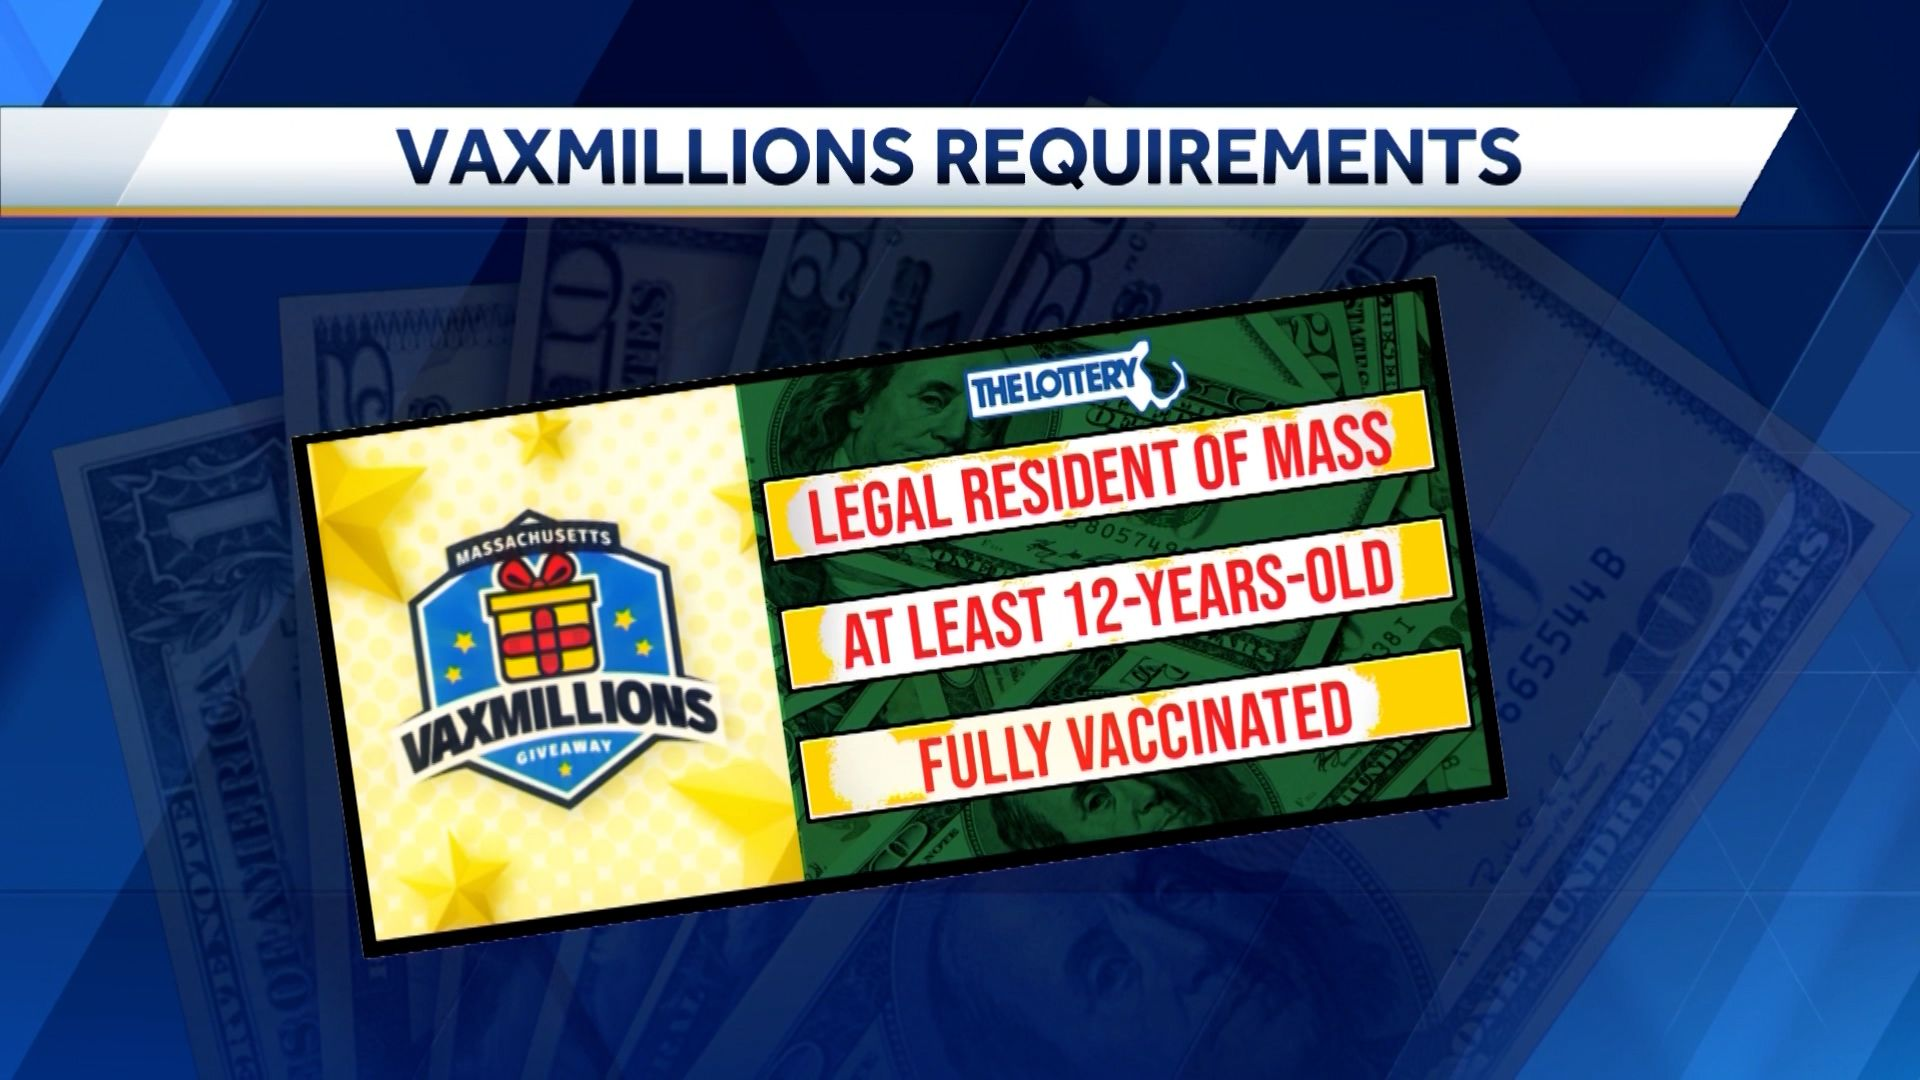 Multiple $1 million prizes up for grabs in Massachusetts COVID-19 vaccine lottery